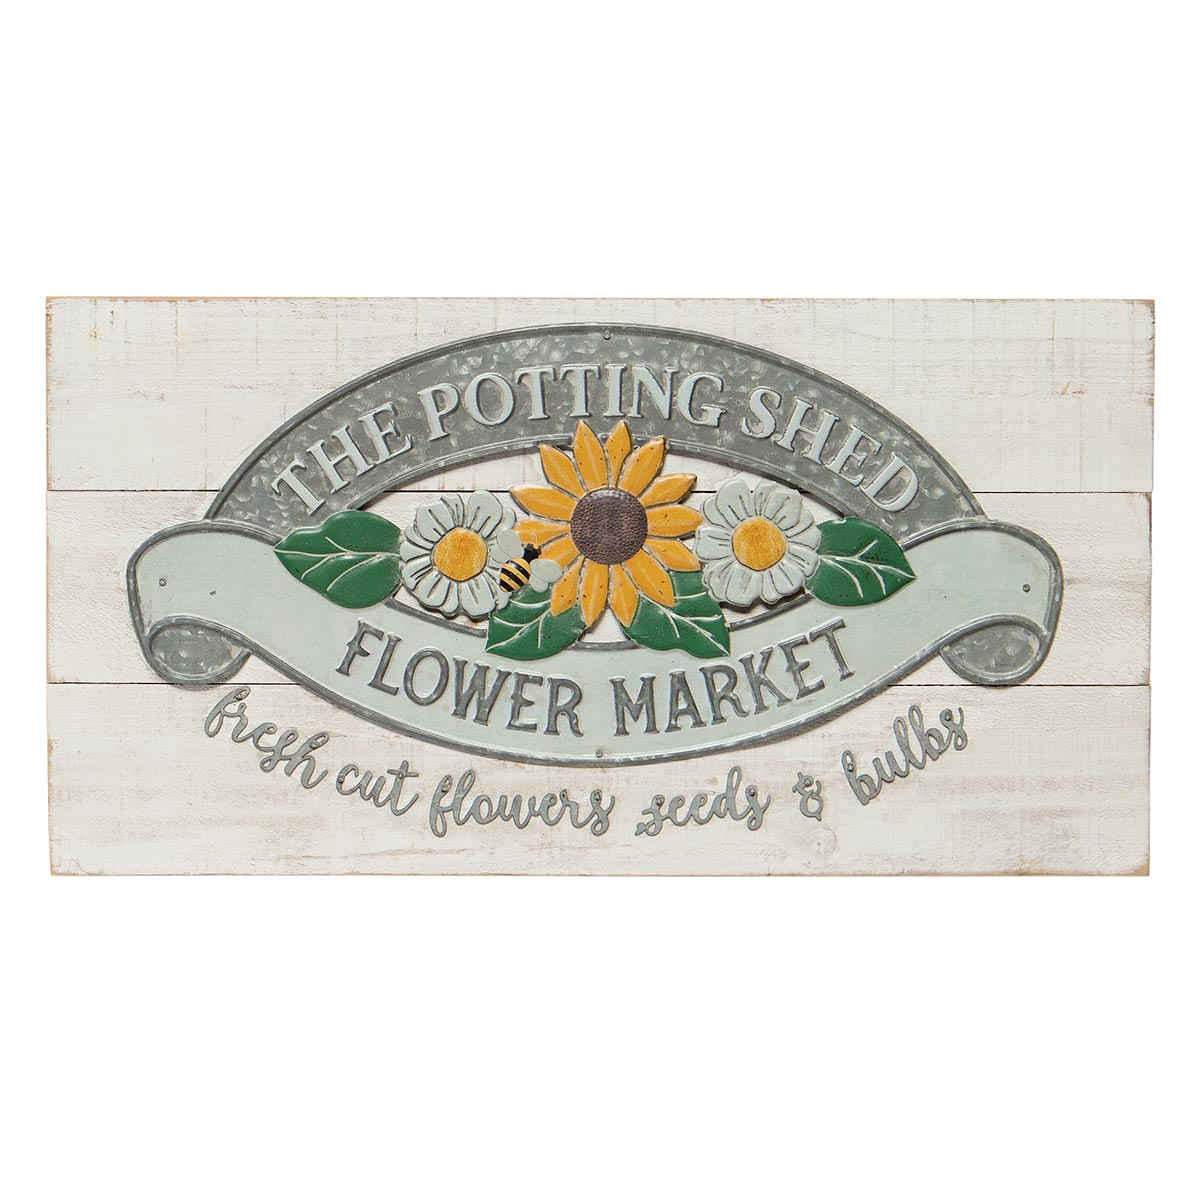 THE POTTING SHED FLOWER MARKET WOOD & METAL SIGN WHITE WITH